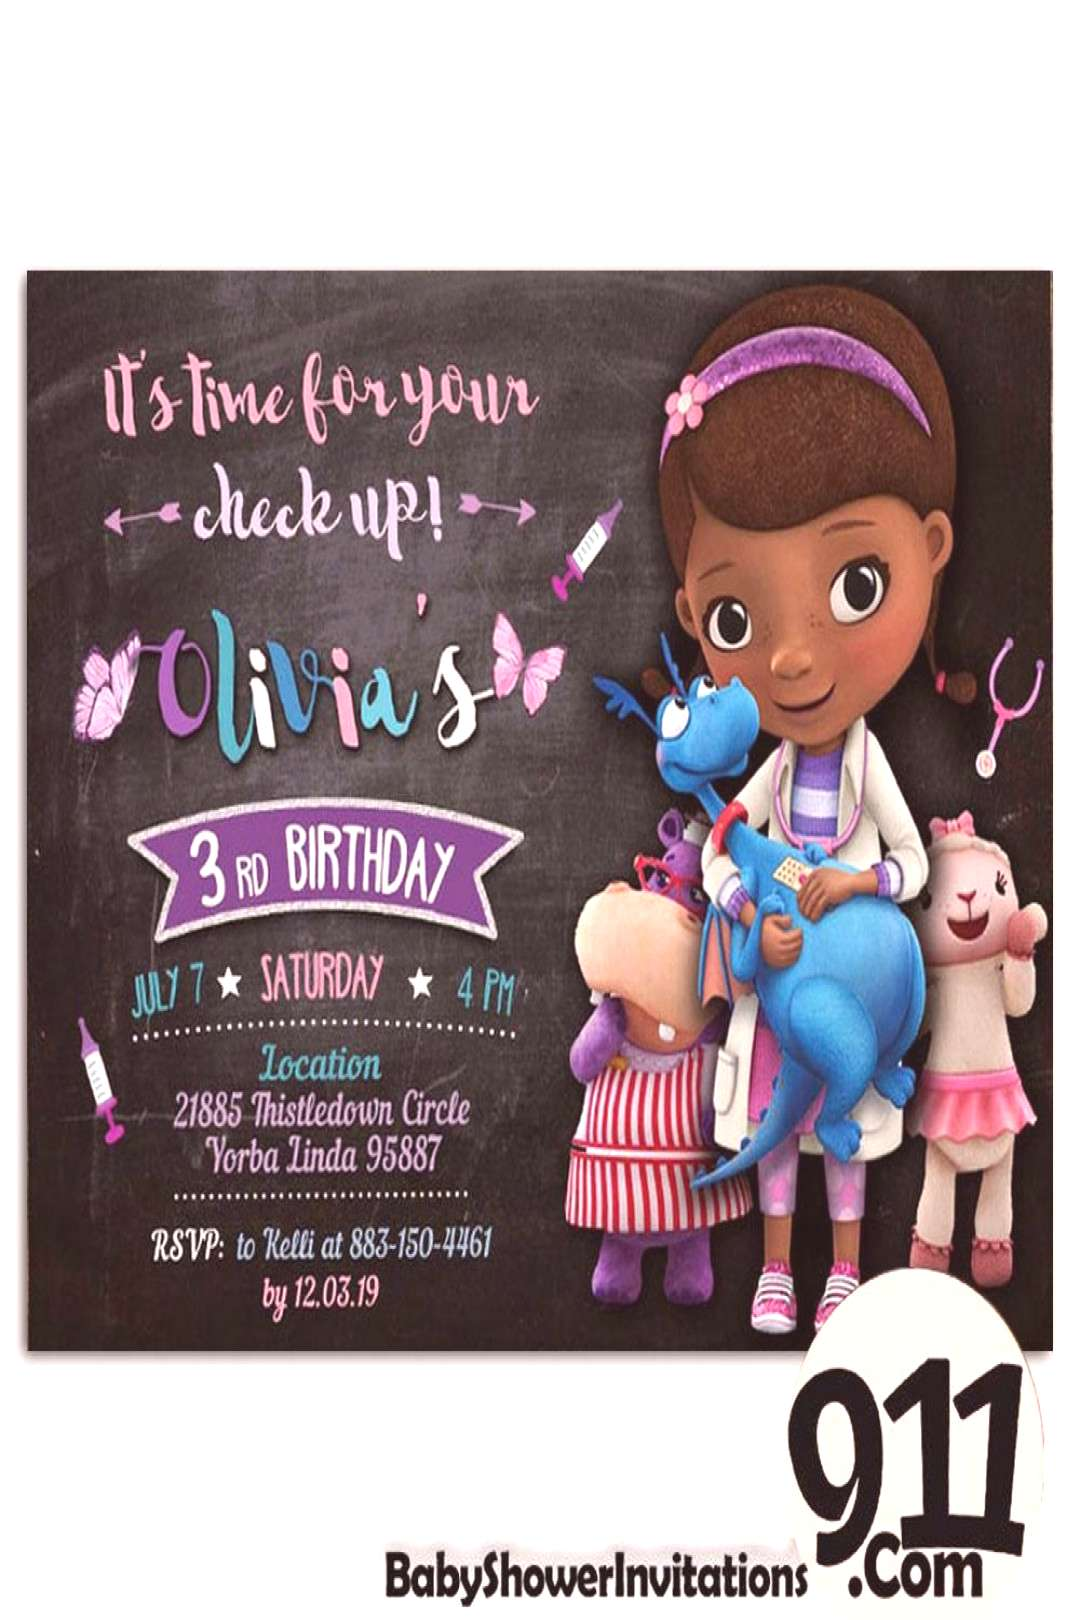 Doc McStuffins Birthday Party Invitation Doc McStuffins Theme Birthday – babyshowerinvitations911